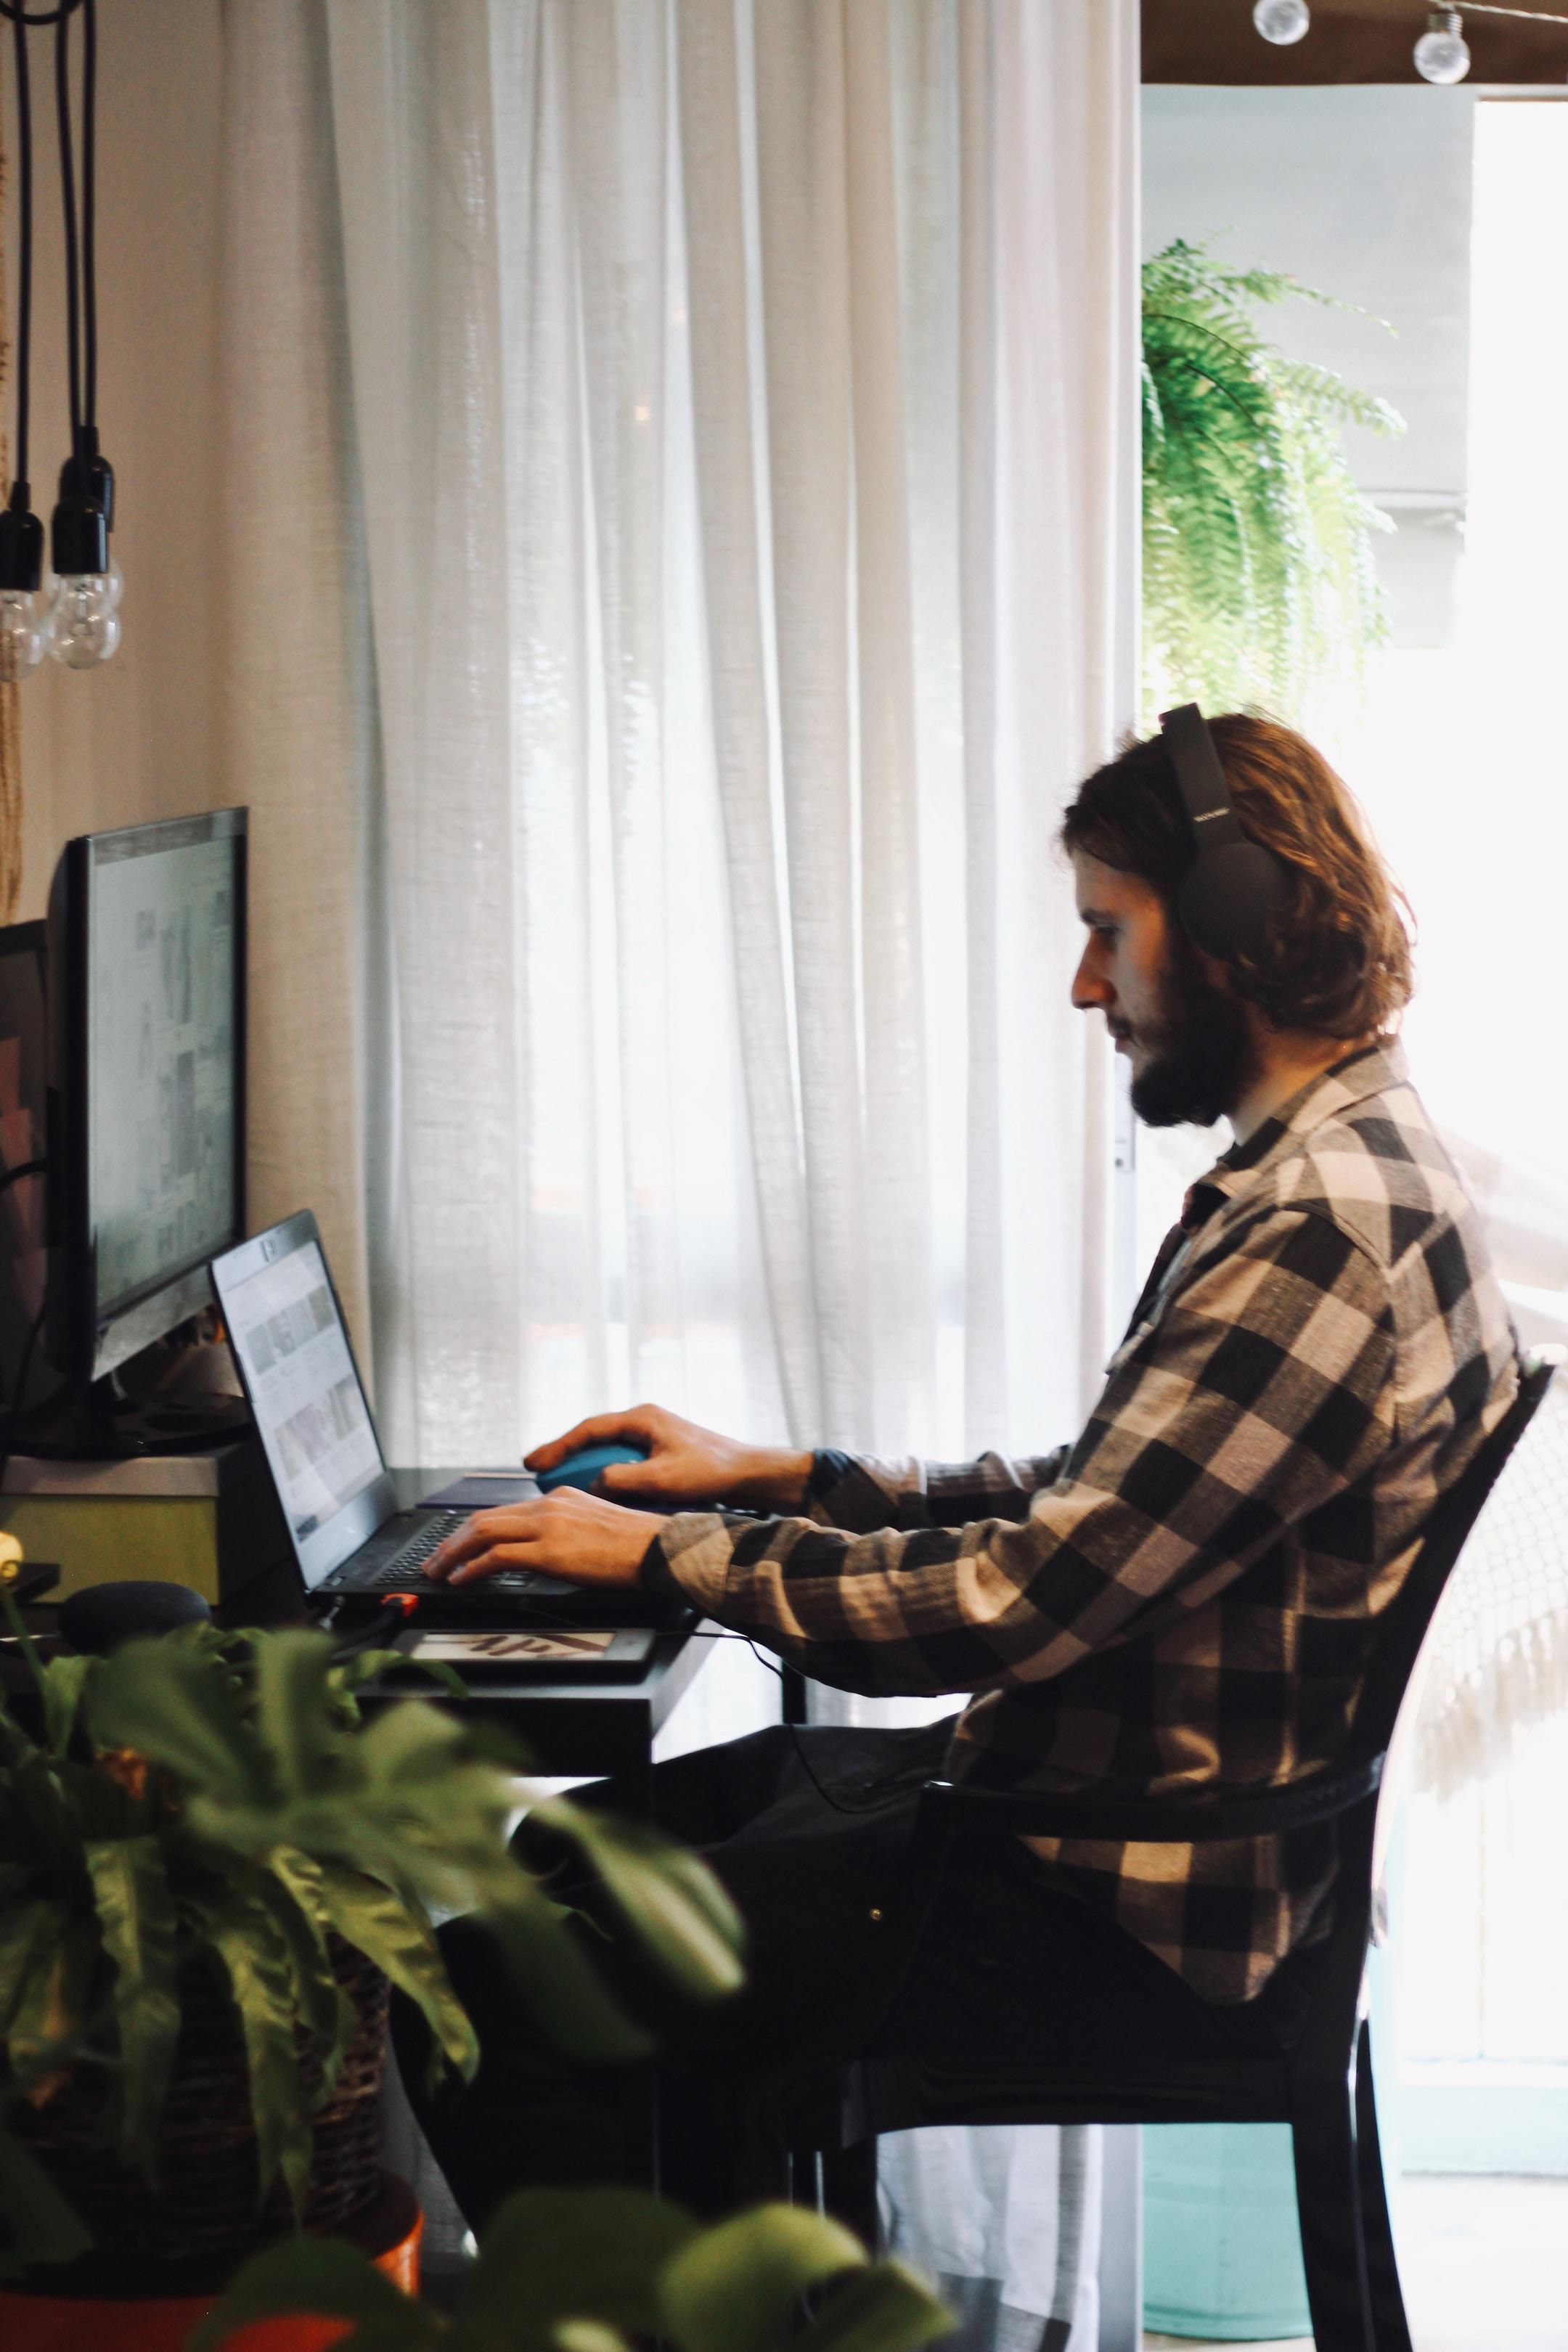 Photo of a man working from home and making money selling promotional products.